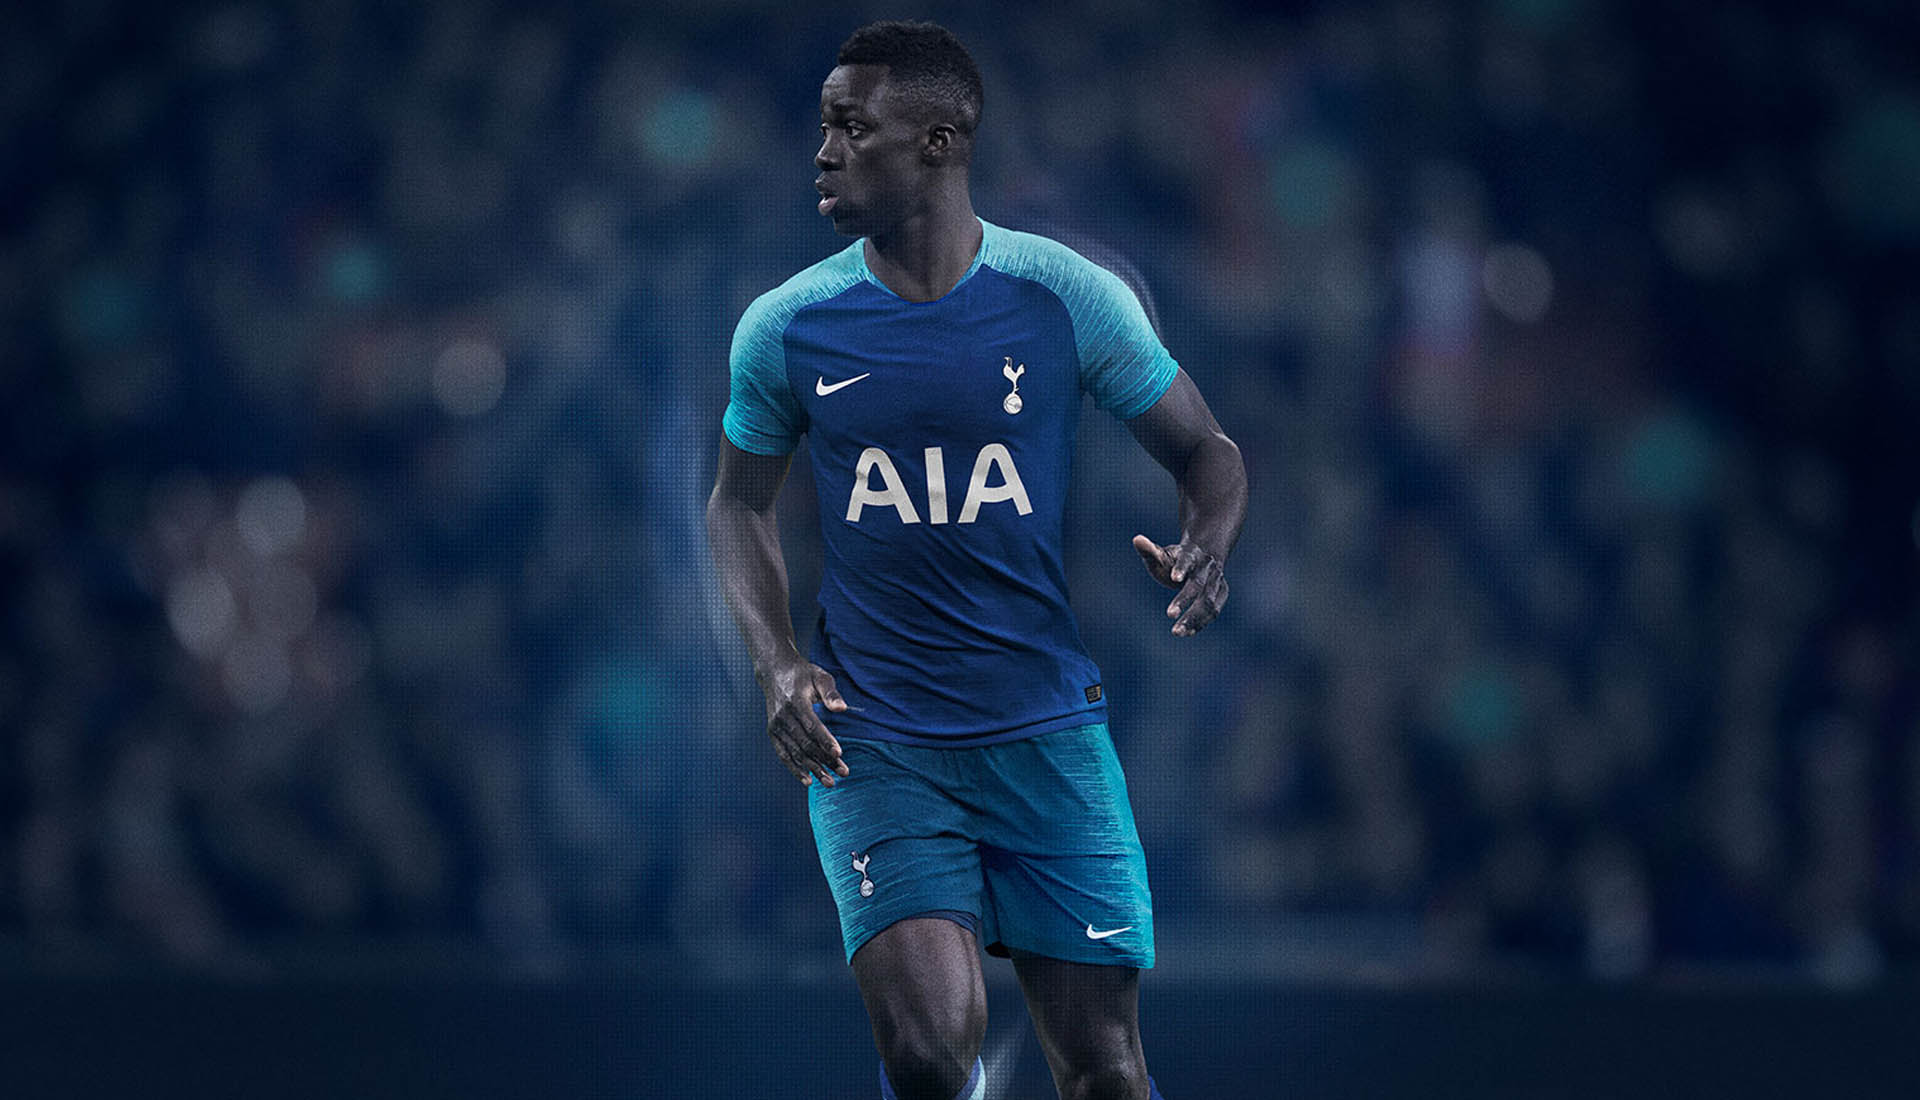 275f754de48 Nike Launch Tottenham Hotspur 18/19 Kits - SoccerBible